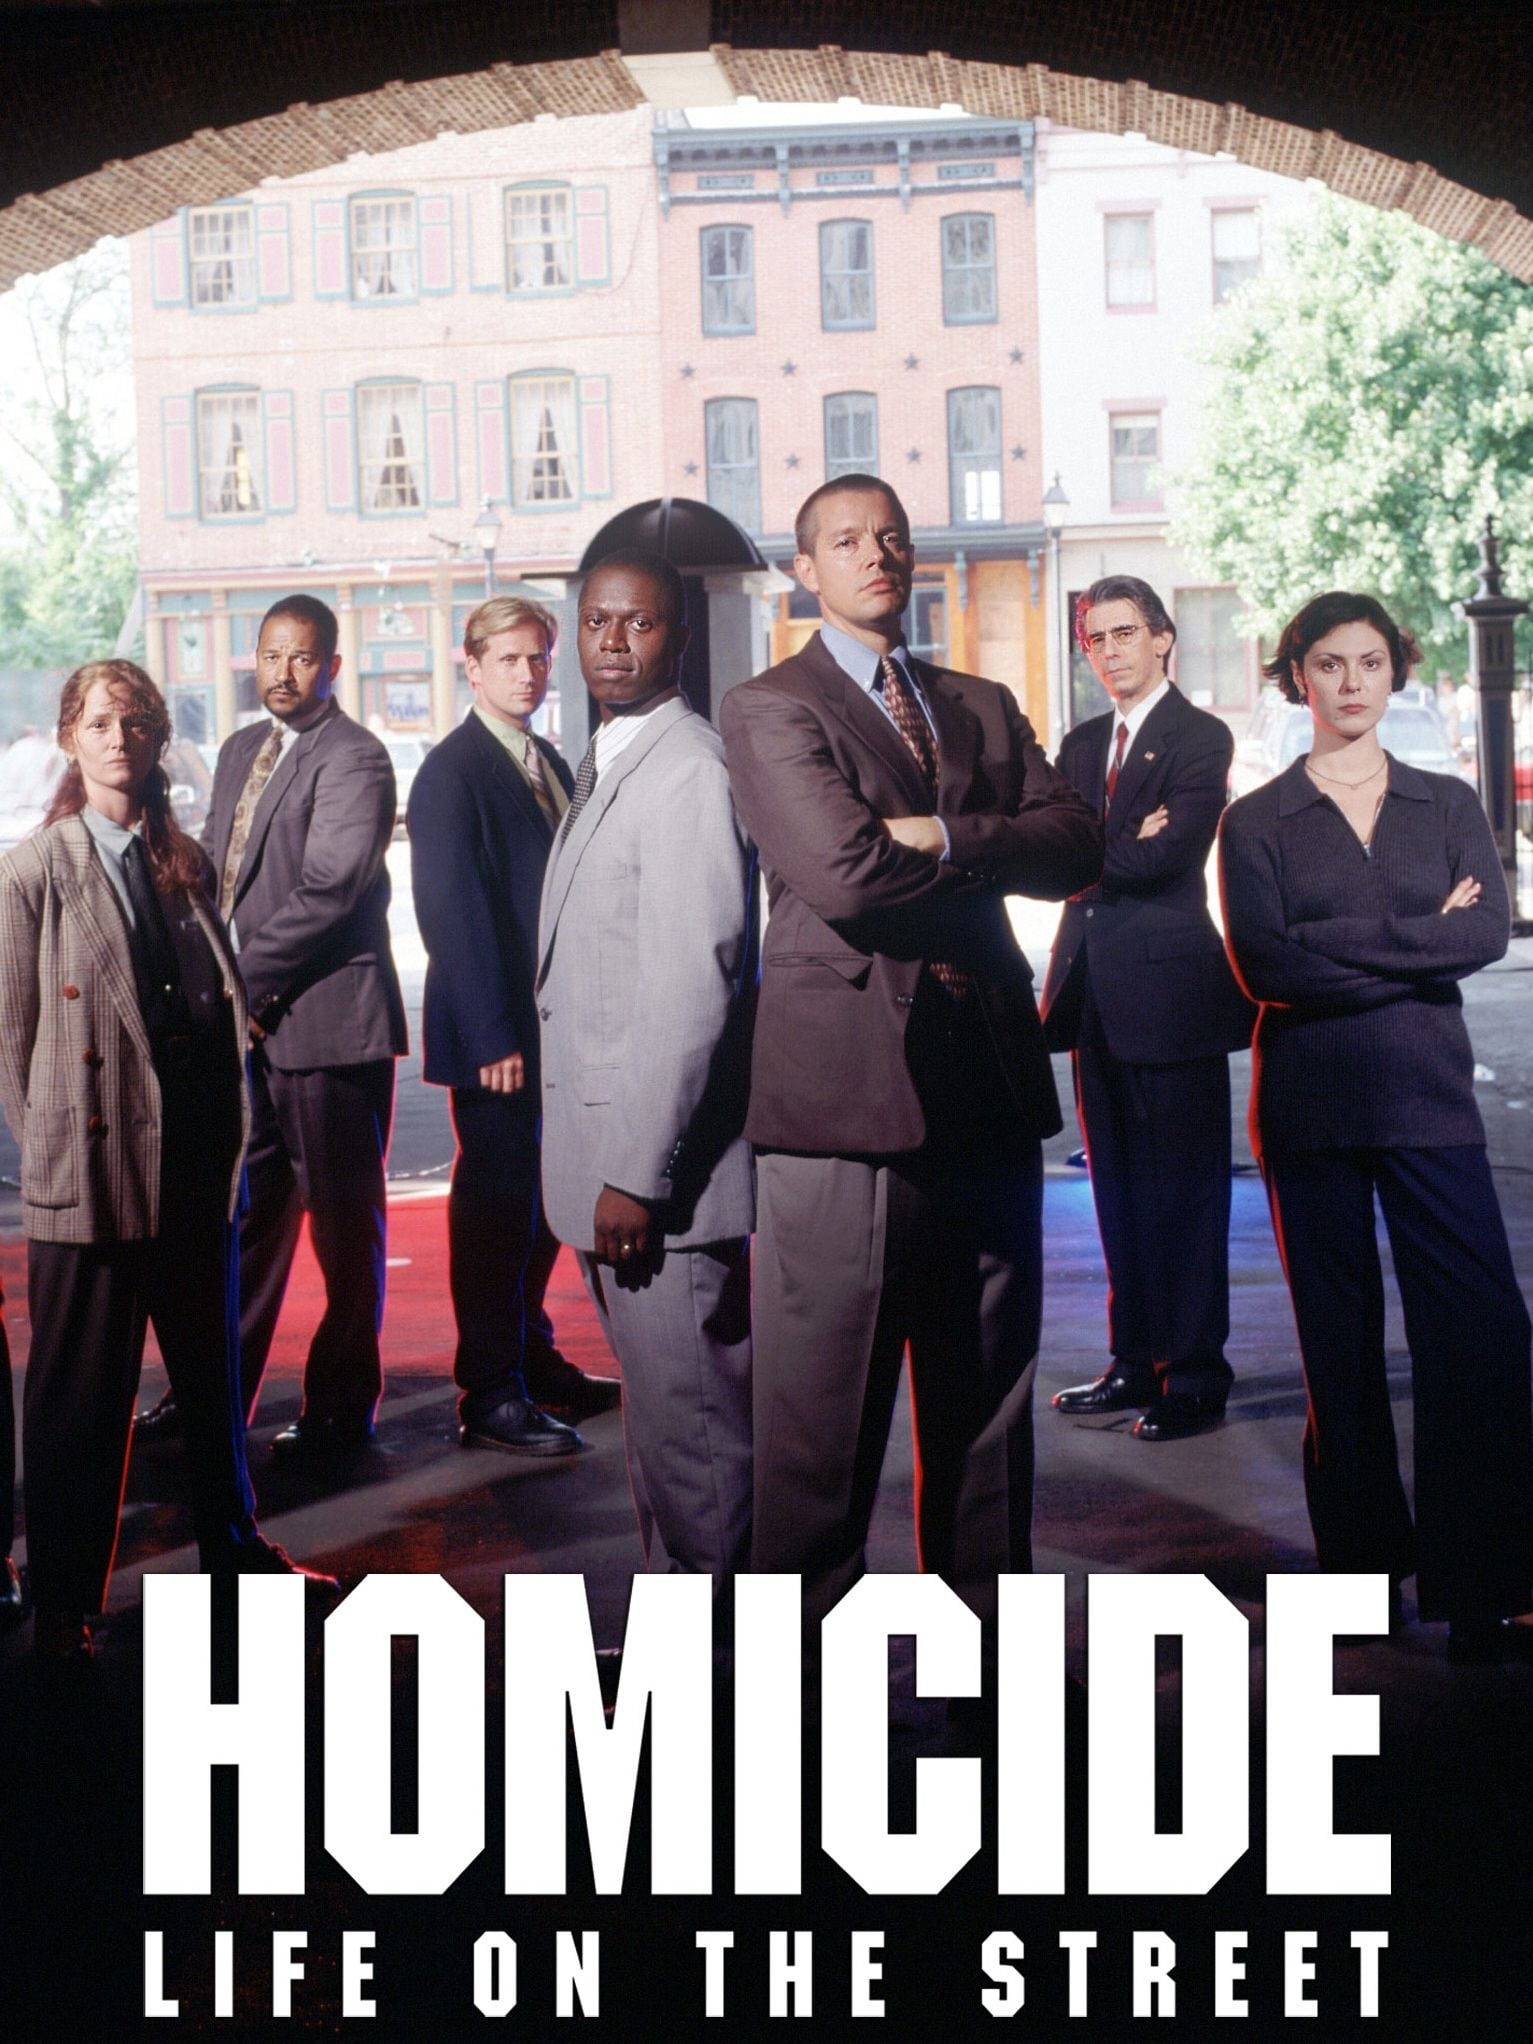 Homicide: Life on the Street (1993)